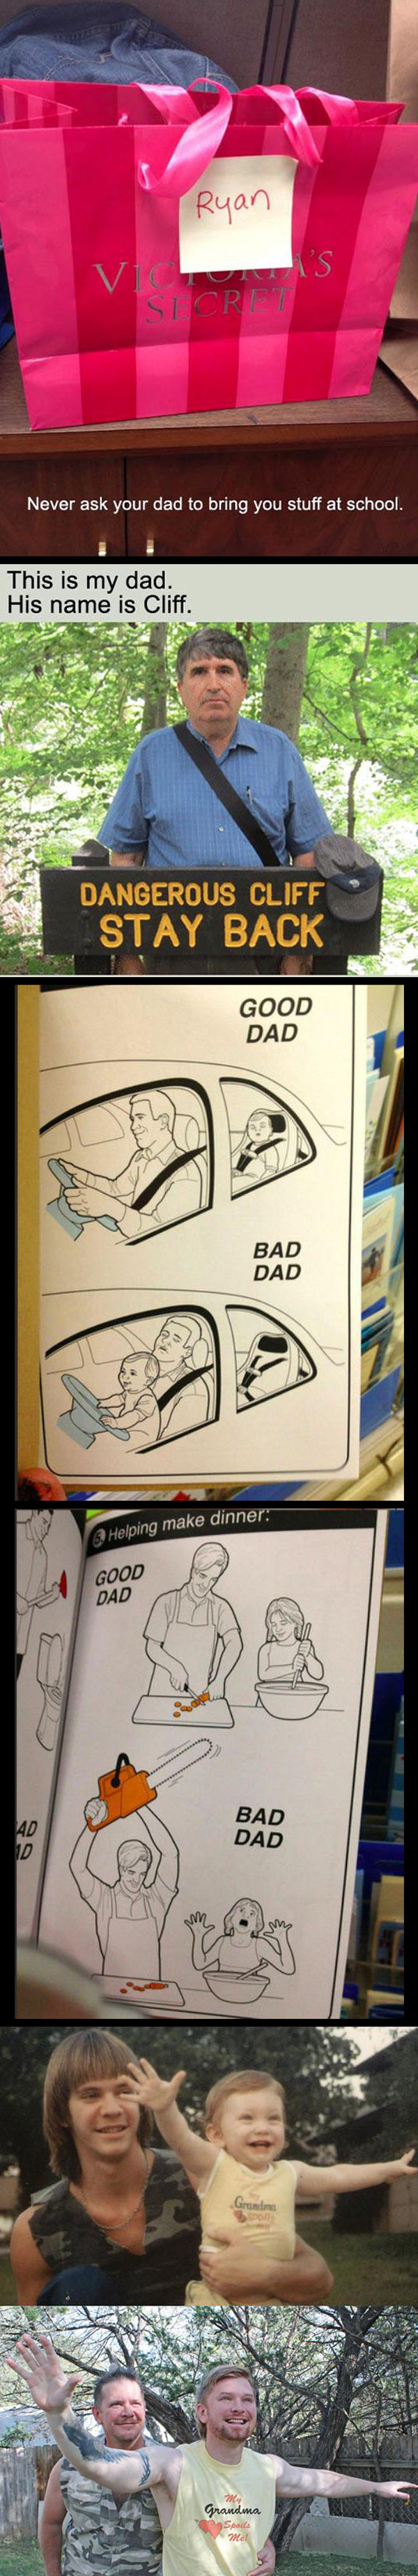 funny dad pictures